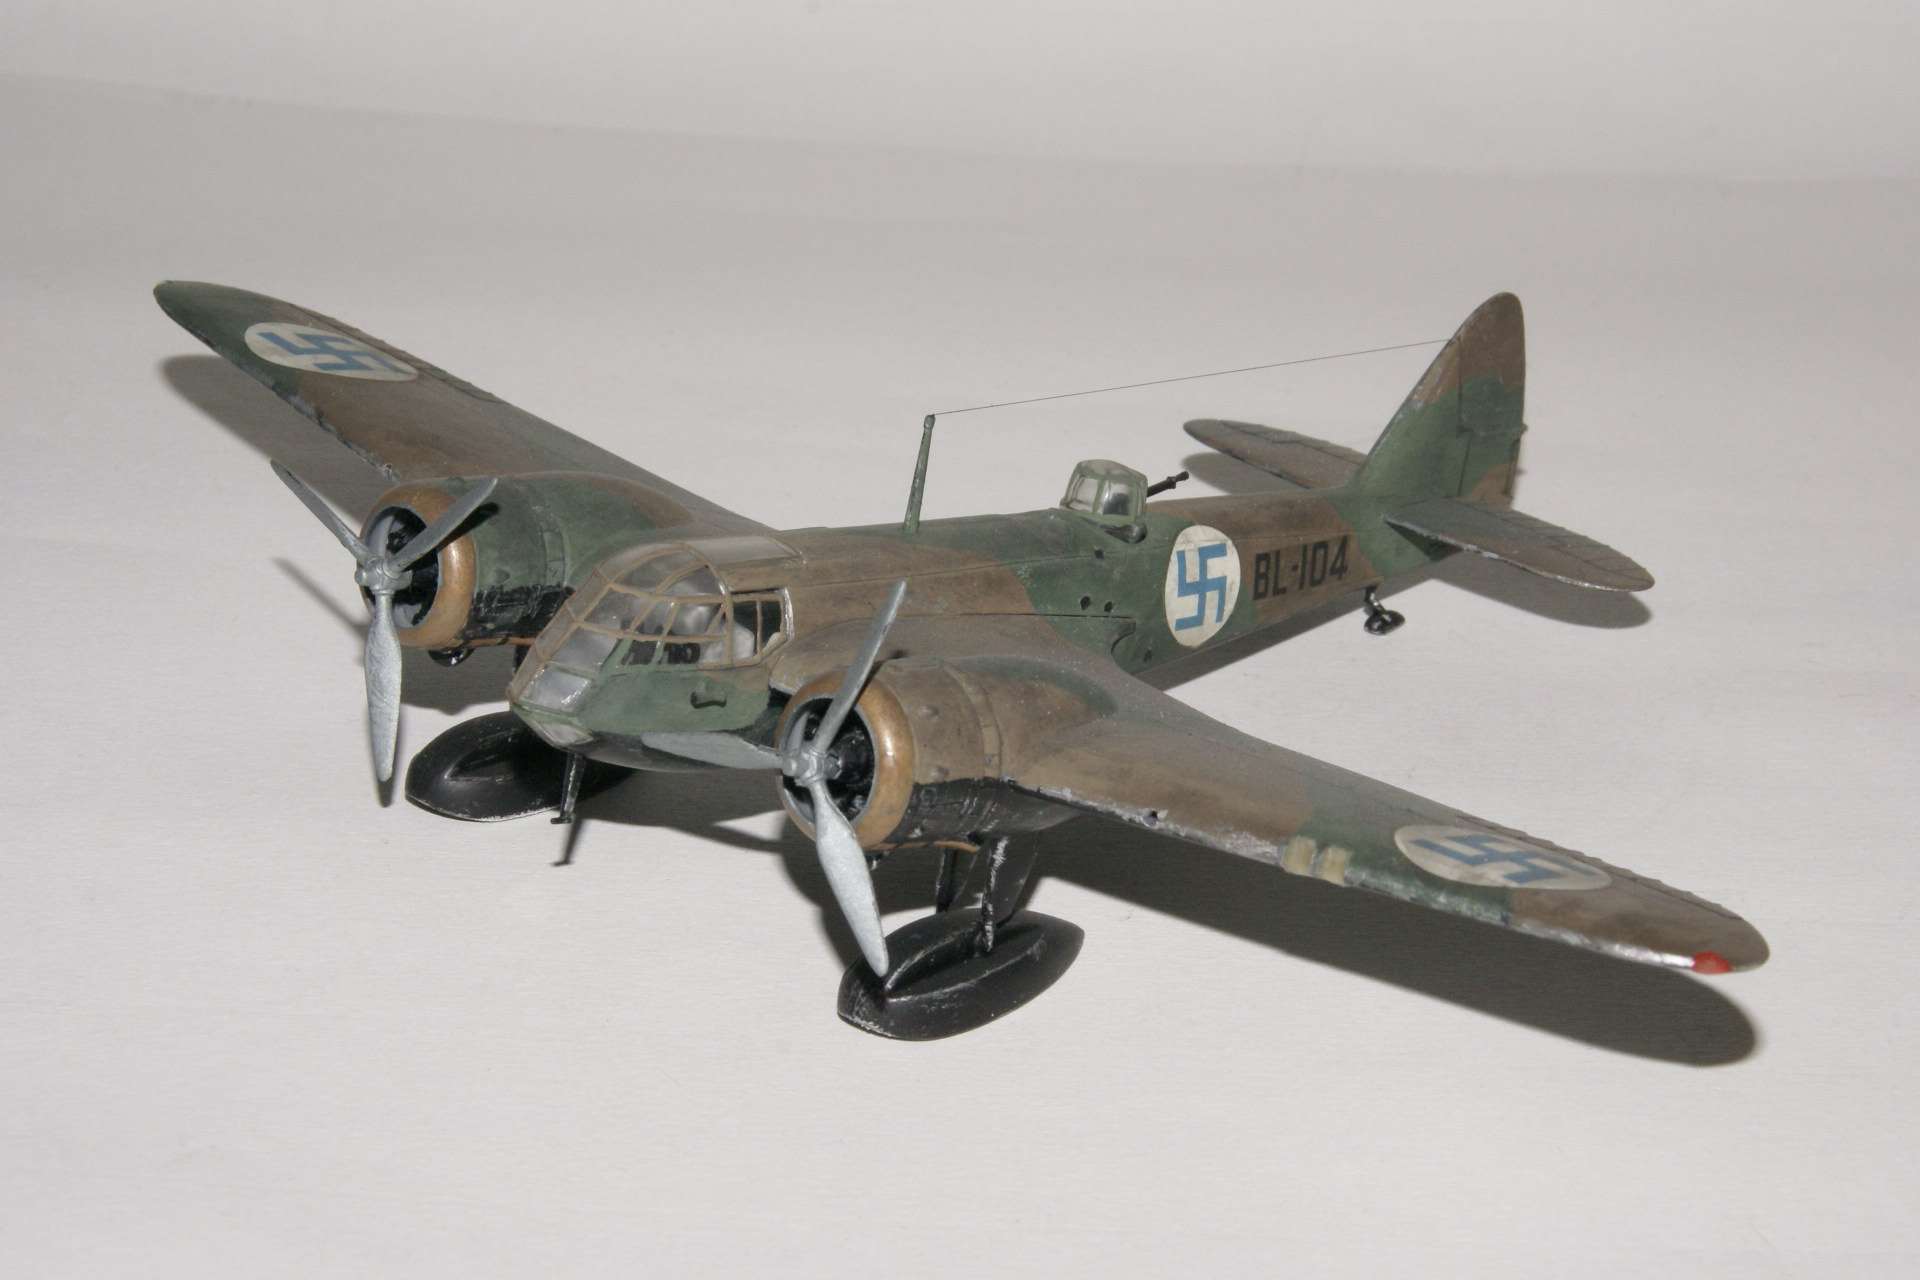 Bristol blenheim i series i 7